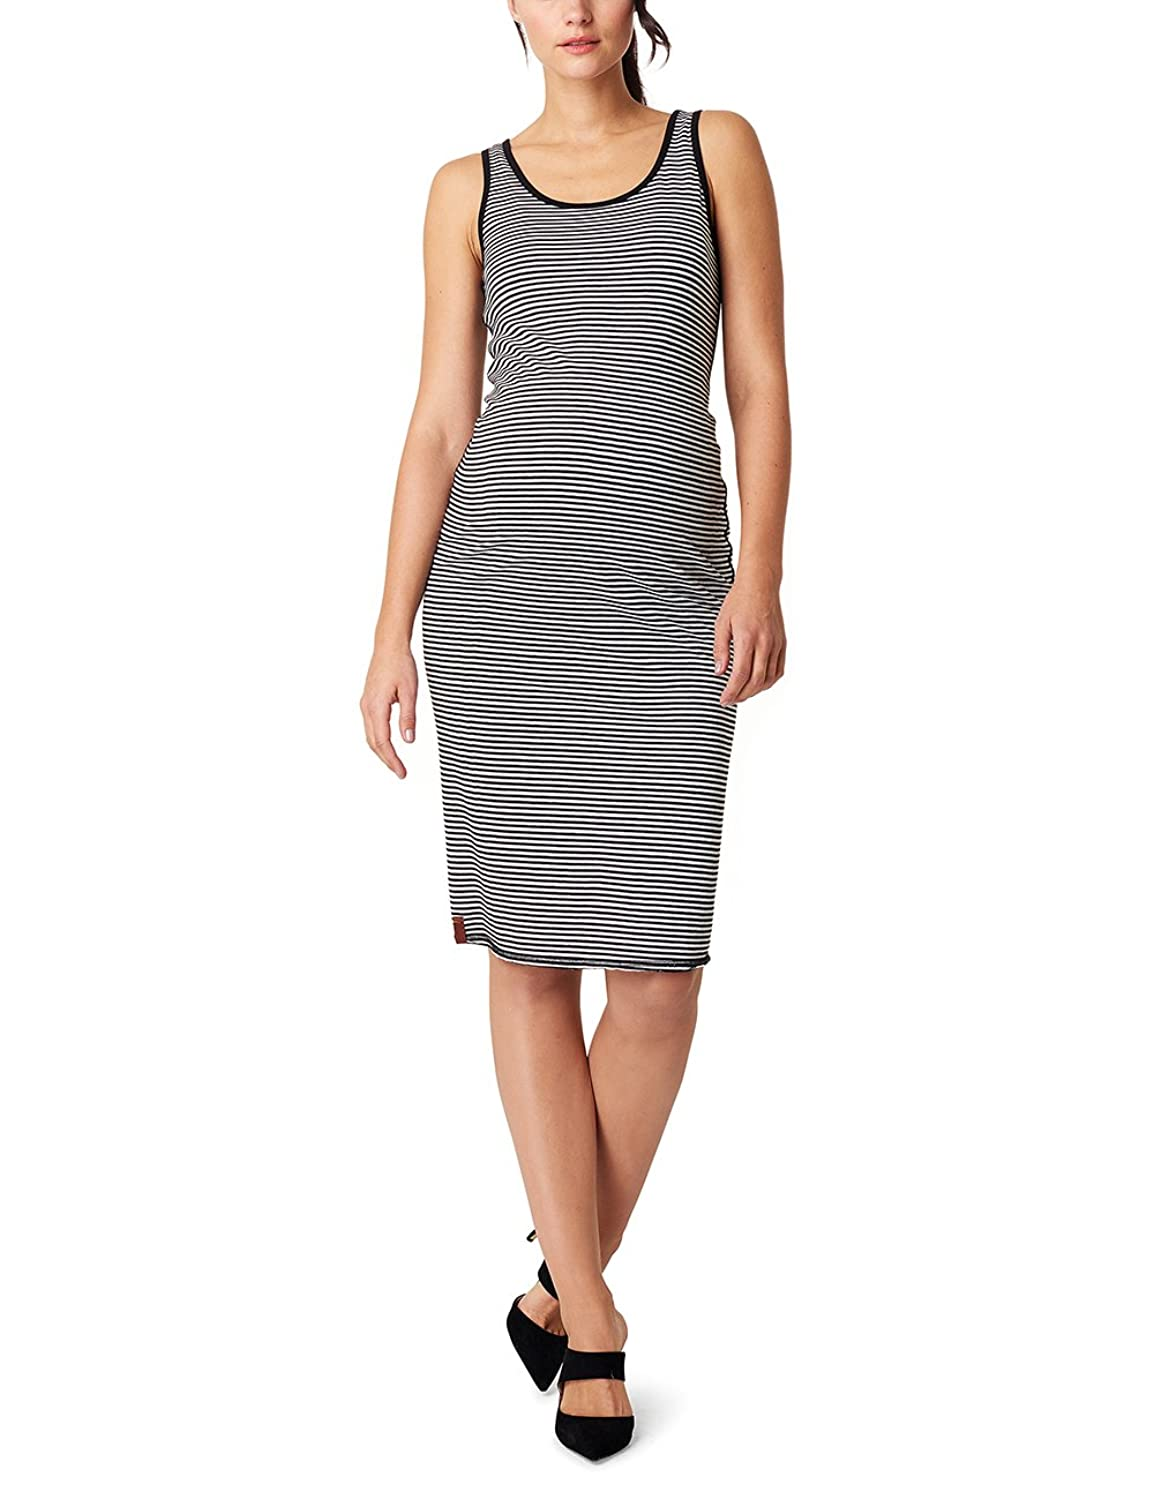 Noppies Damen Umstandskleid Dress Sl Nora 70121